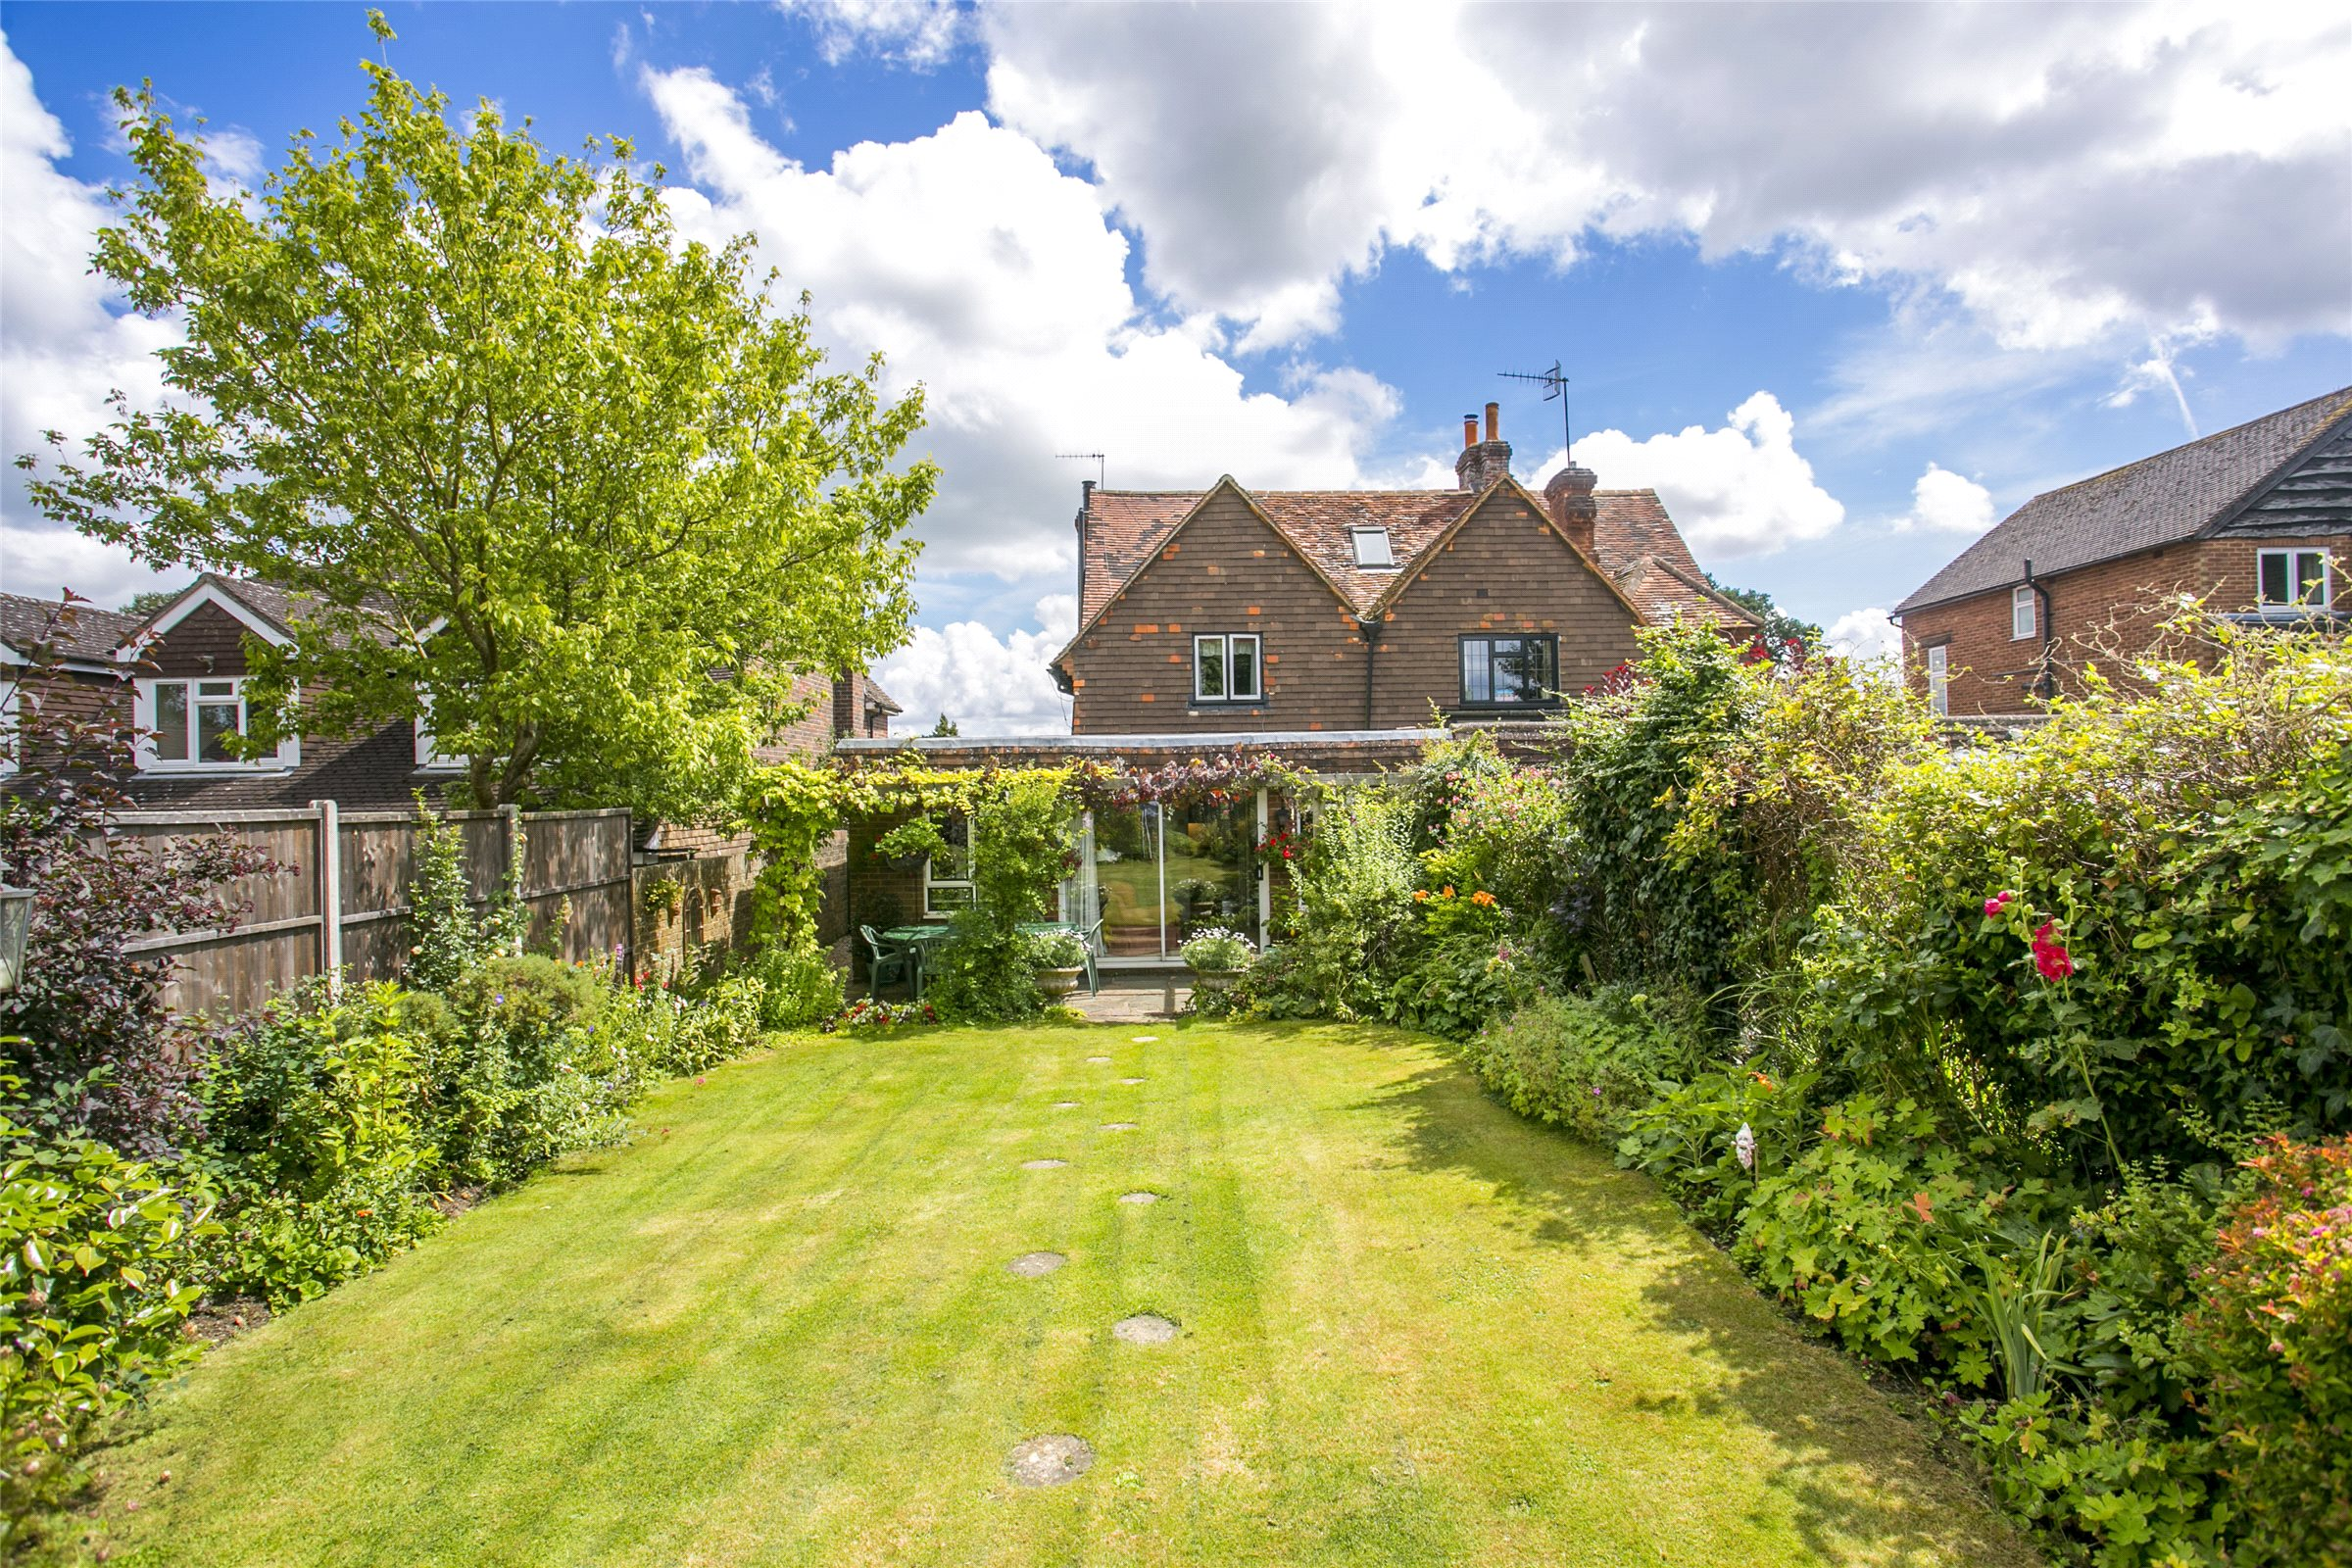 3 Bedrooms Semi Detached House for sale in The Street, Capel, Dorking, Surrey, RH5